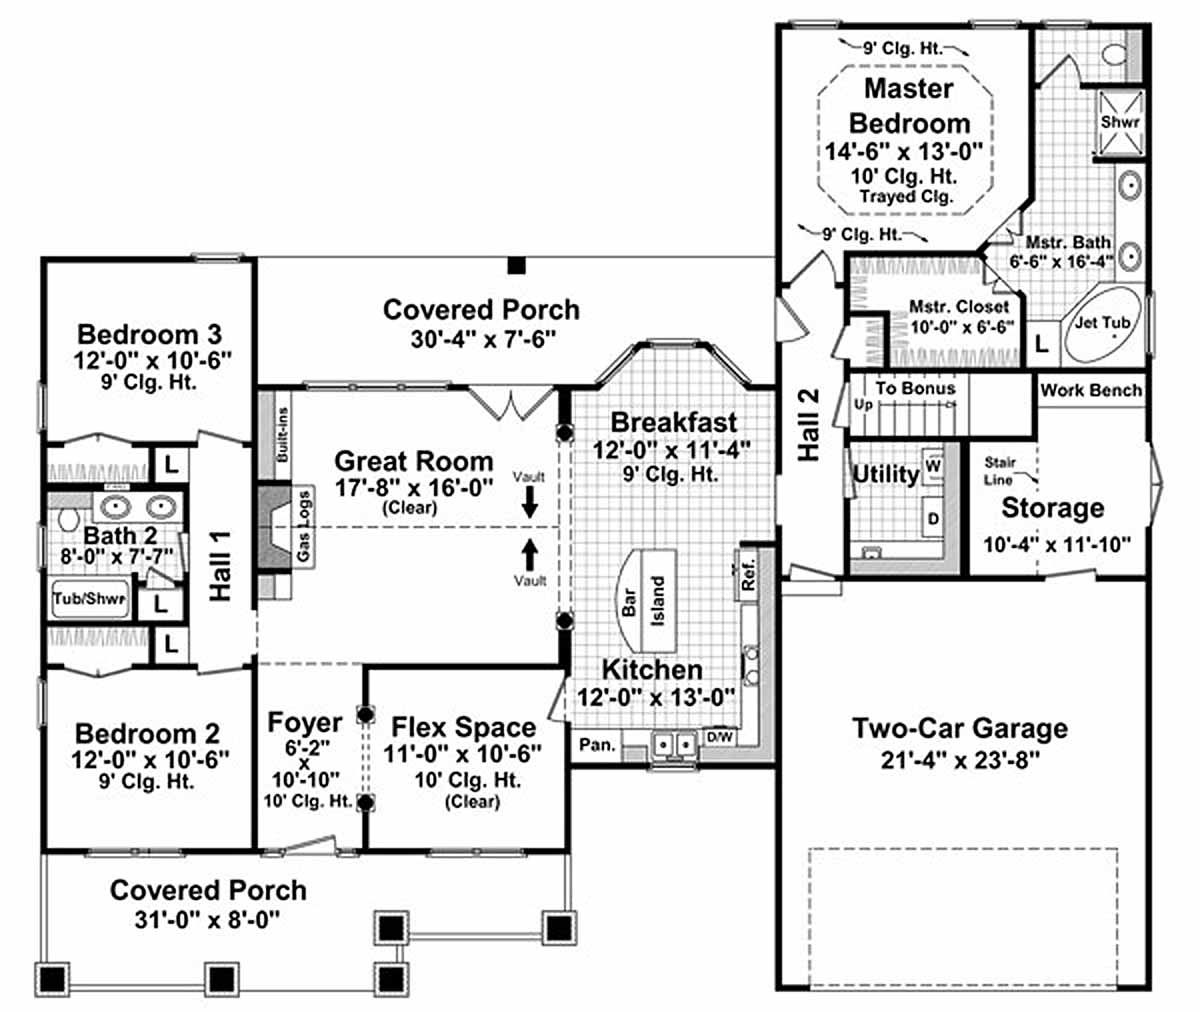 Electrical Floor Plan Symbols,Floor.Home Plans Ideas Picture